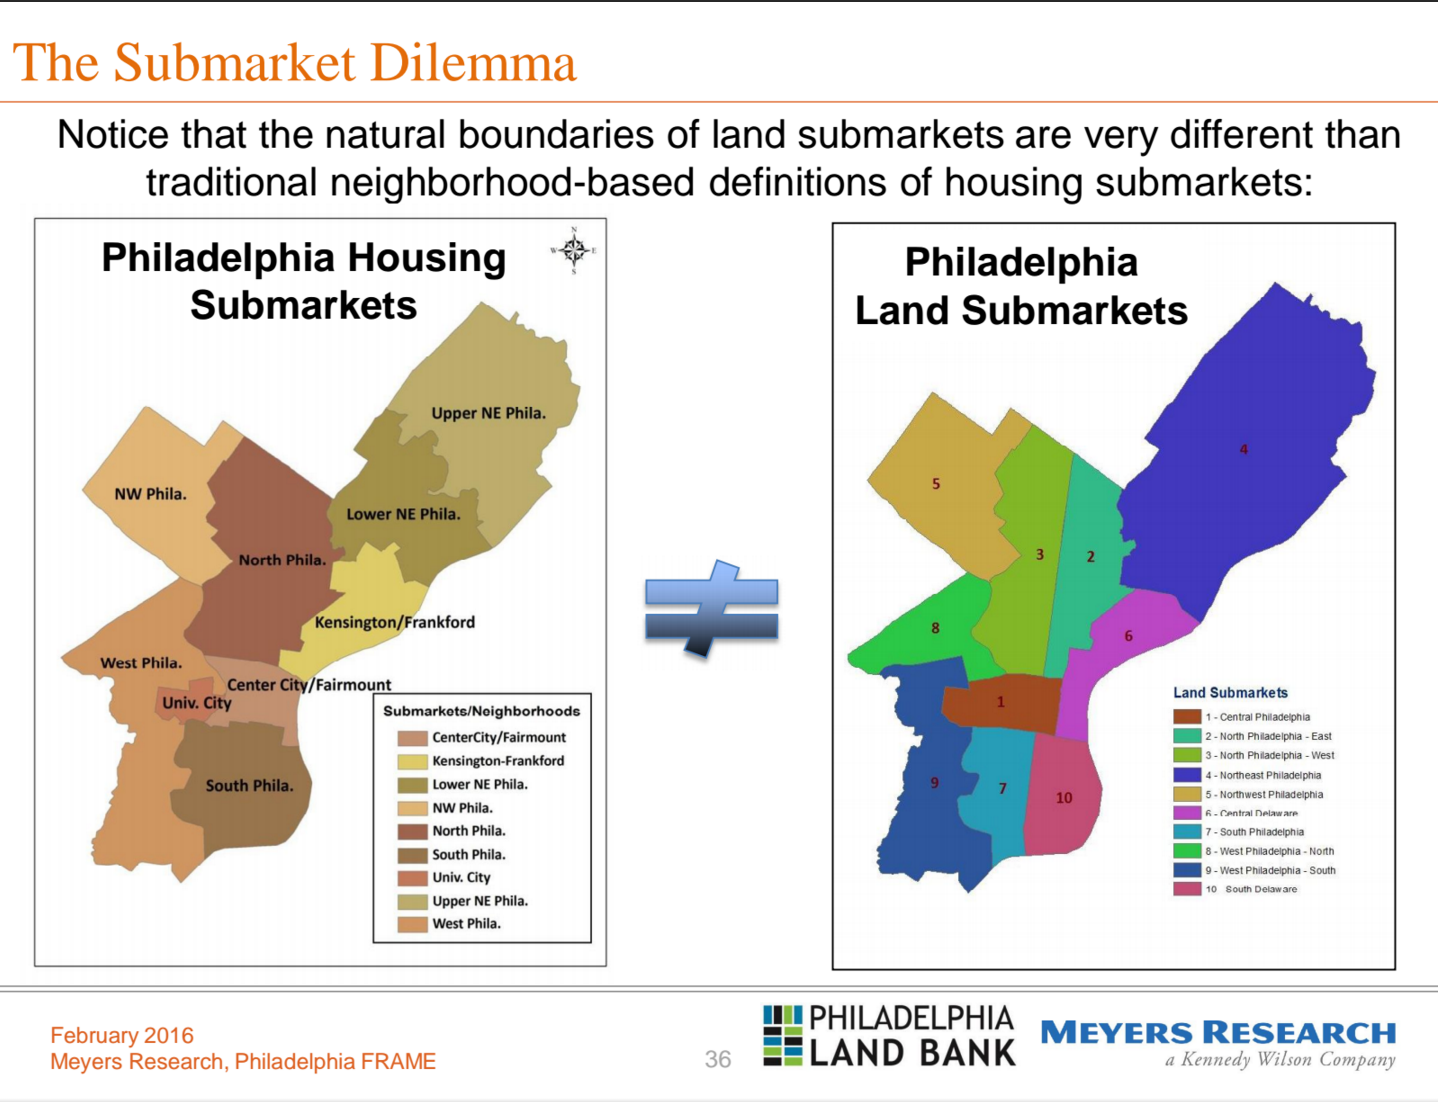 Housing and land submarkets